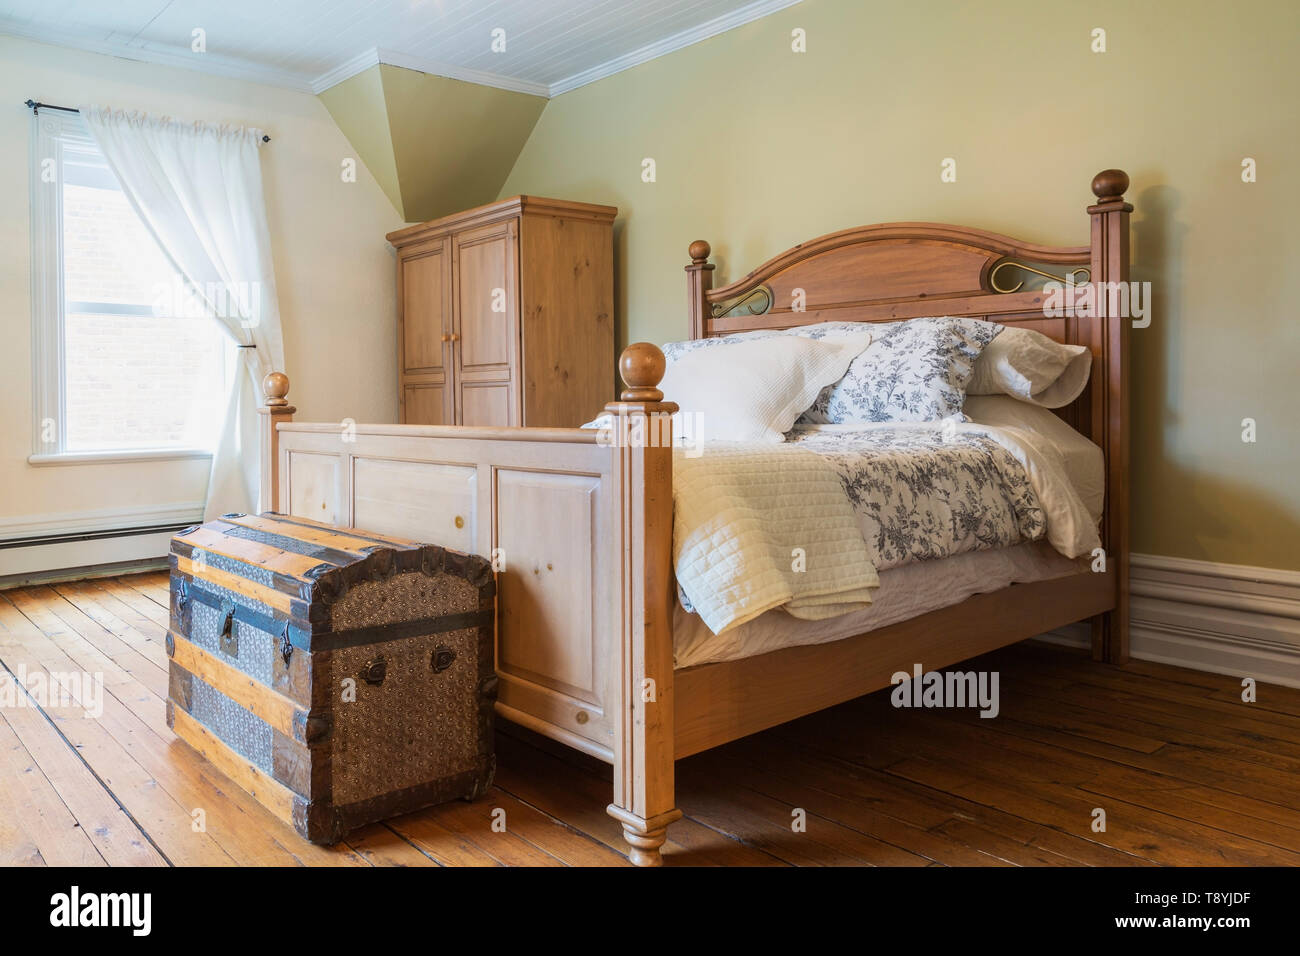 Queen Size Bed With Wooden Headboard And Footboard Antique Travel